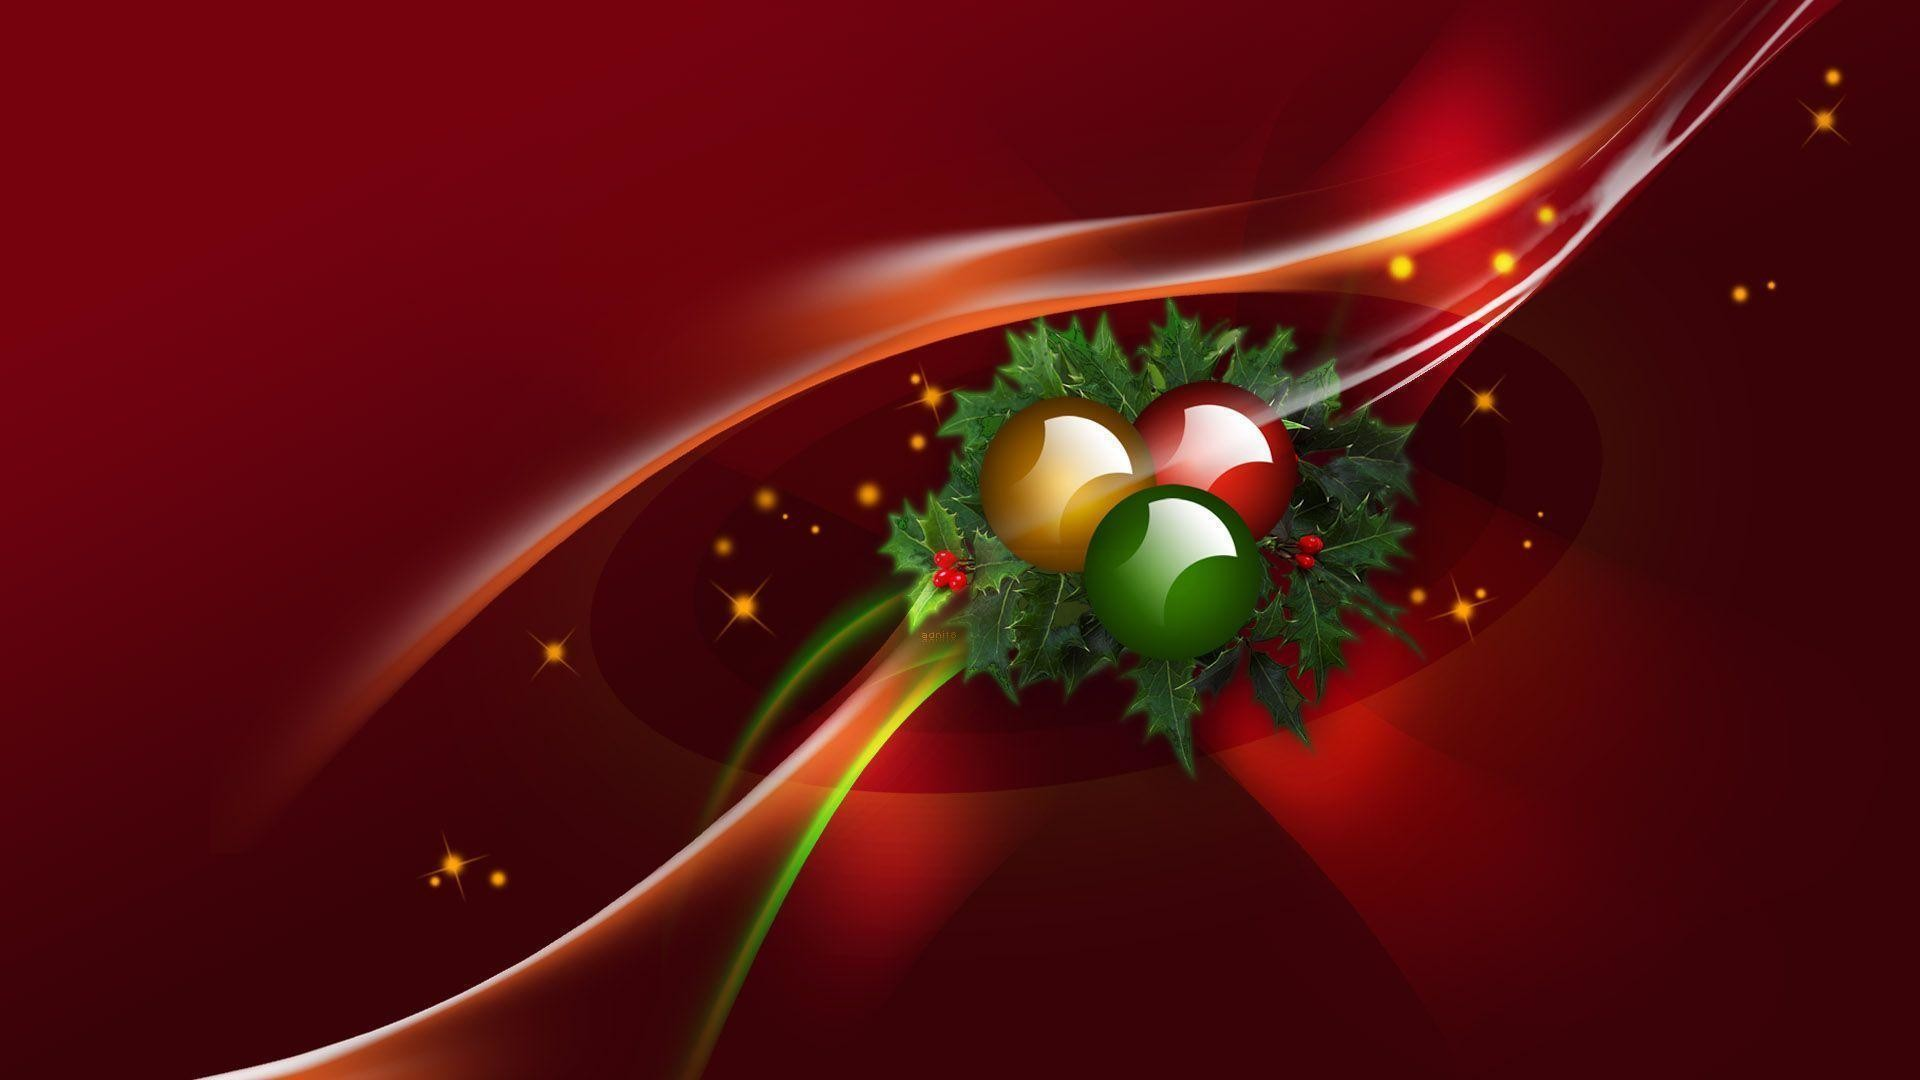 Res: 1920x1080, Christmas Mistletoe HD Wallpapers - HD Wallpapers Inn